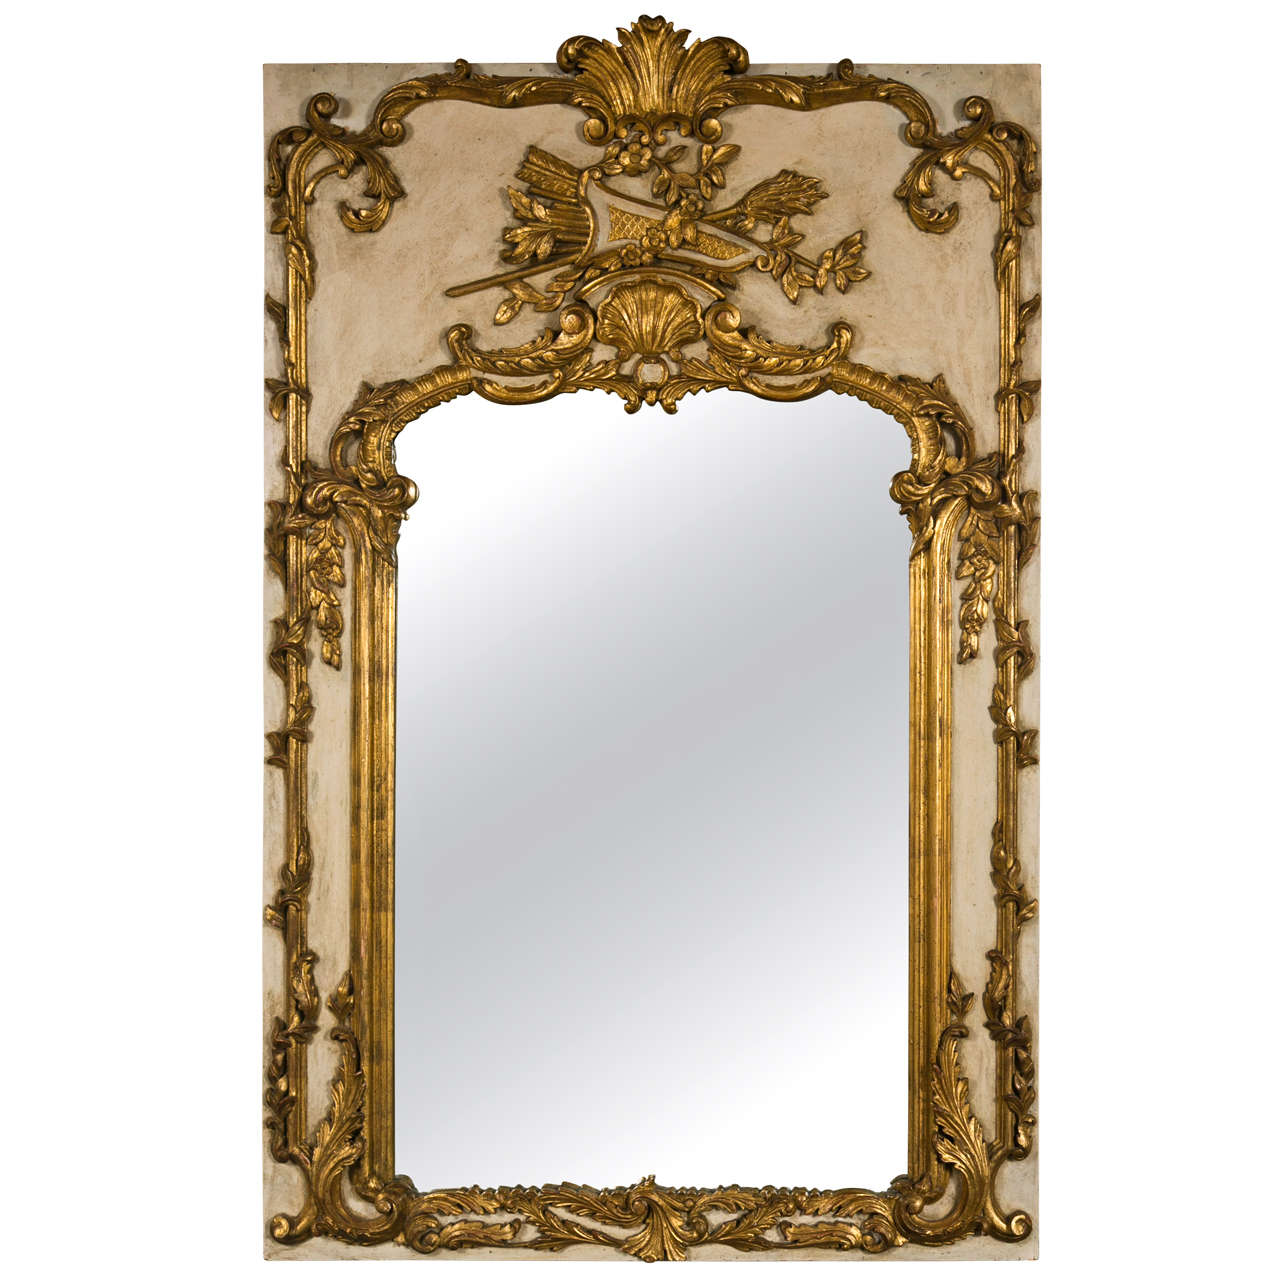 french rococo style painted mirror at 1stdibs